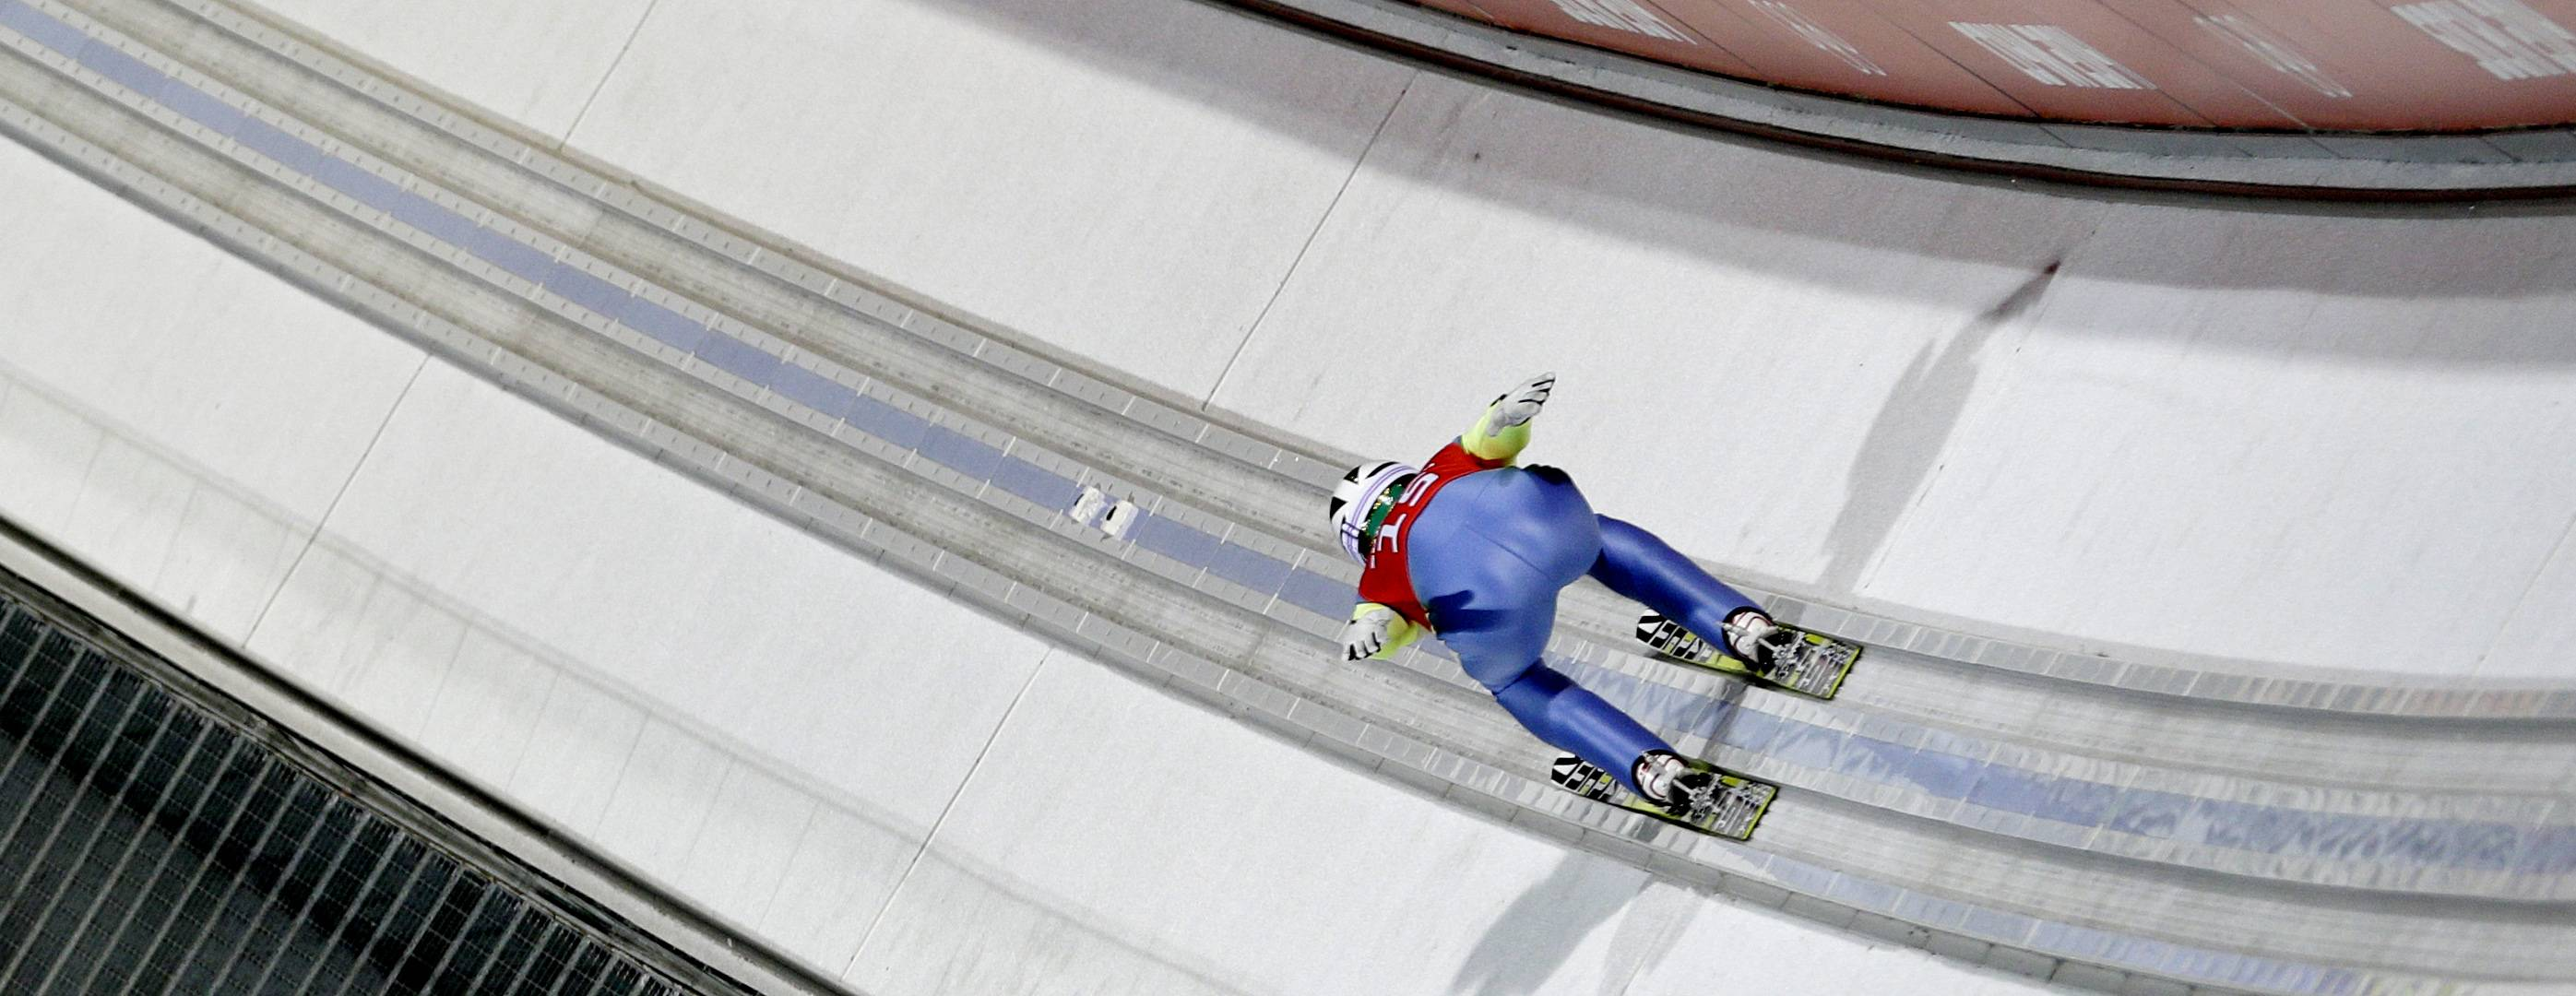 Kim Hyun-ki of South Korea speeds down the track during a men's ski jumping large hill training session.